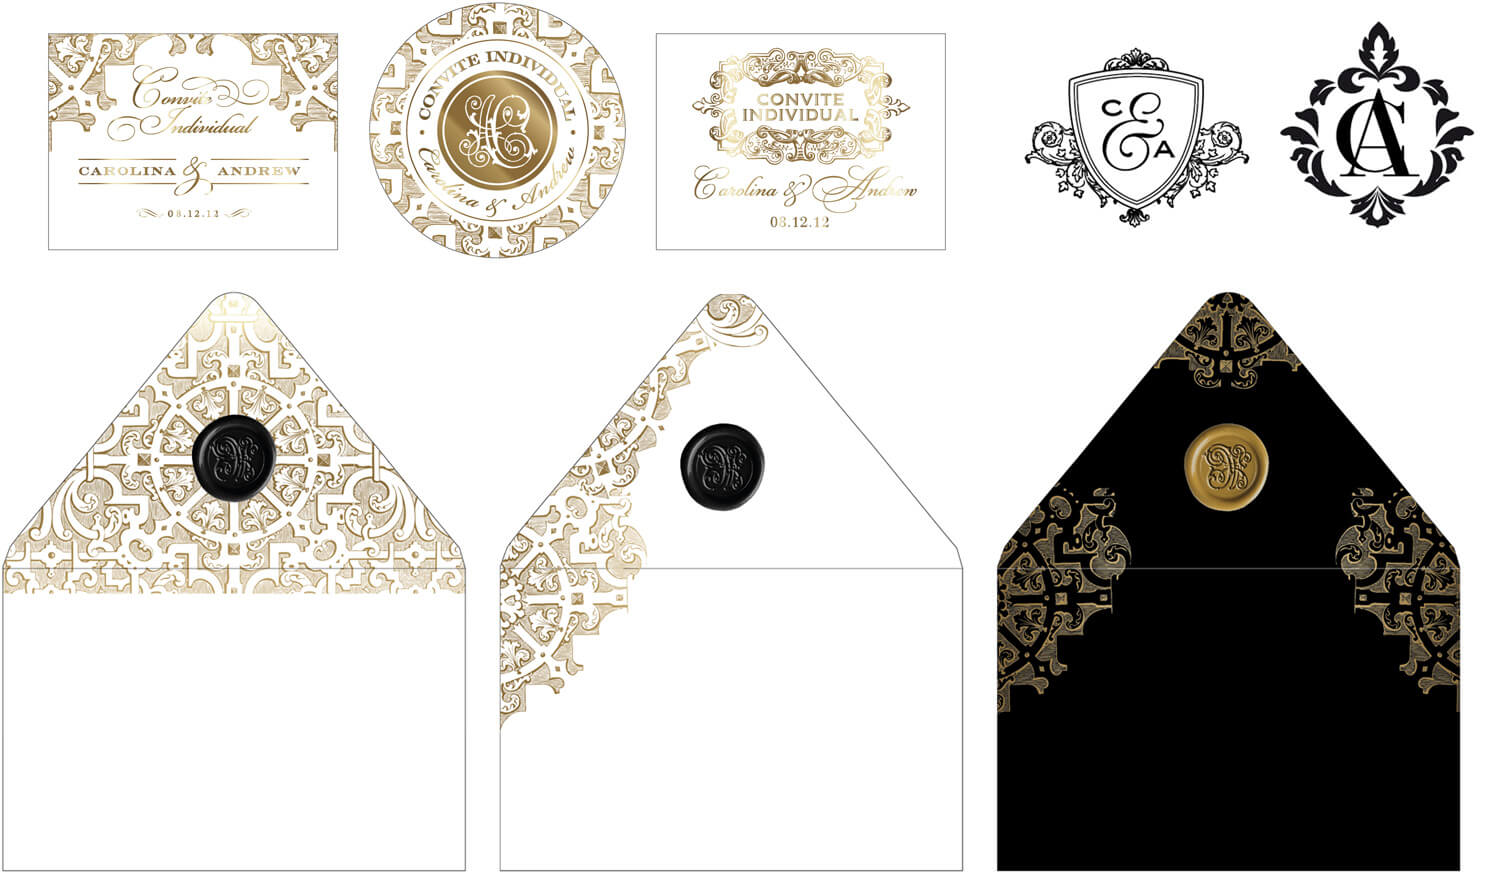 Castle Itaipava inspired envelopes and entrance cards